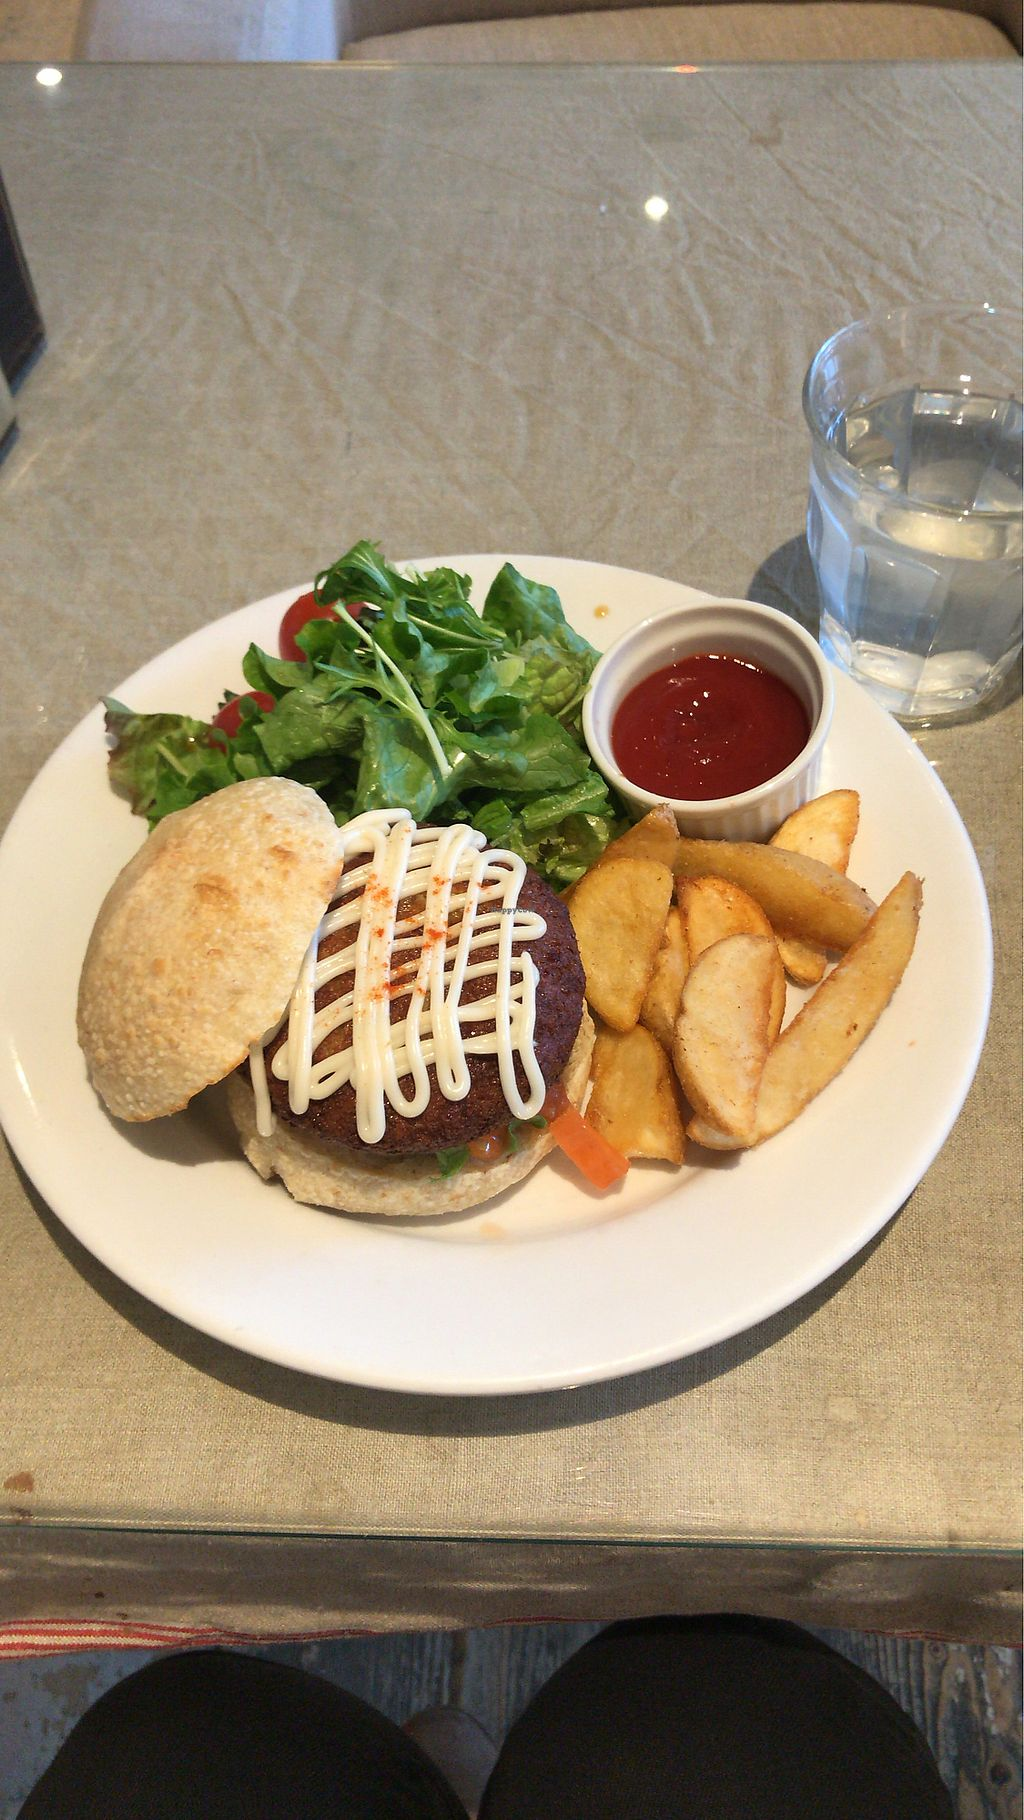 """Photo of Mumokuteki Cafe and Foods  by <a href=""""/members/profile/MelissaW"""">MelissaW</a> <br/>Tofu burger with chips  <br/> February 4, 2018  - <a href='/contact/abuse/image/15812/354818'>Report</a>"""